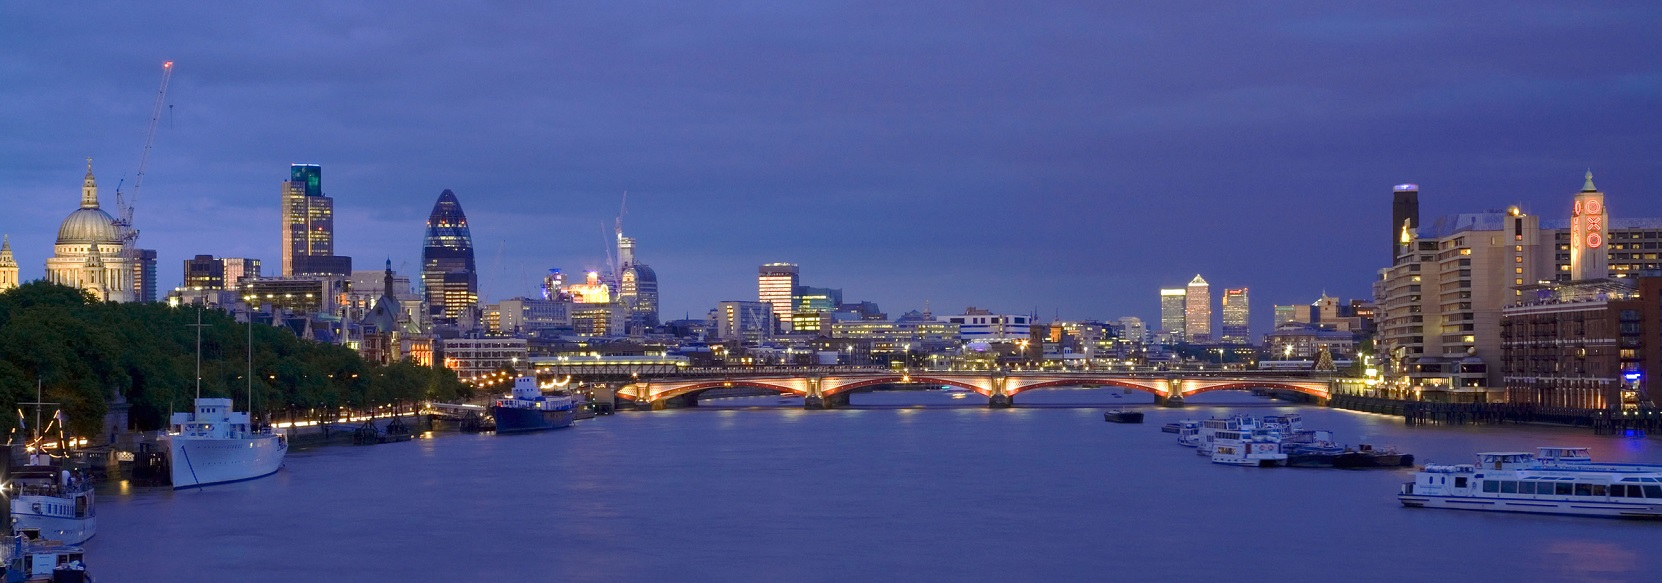 River Thames at night